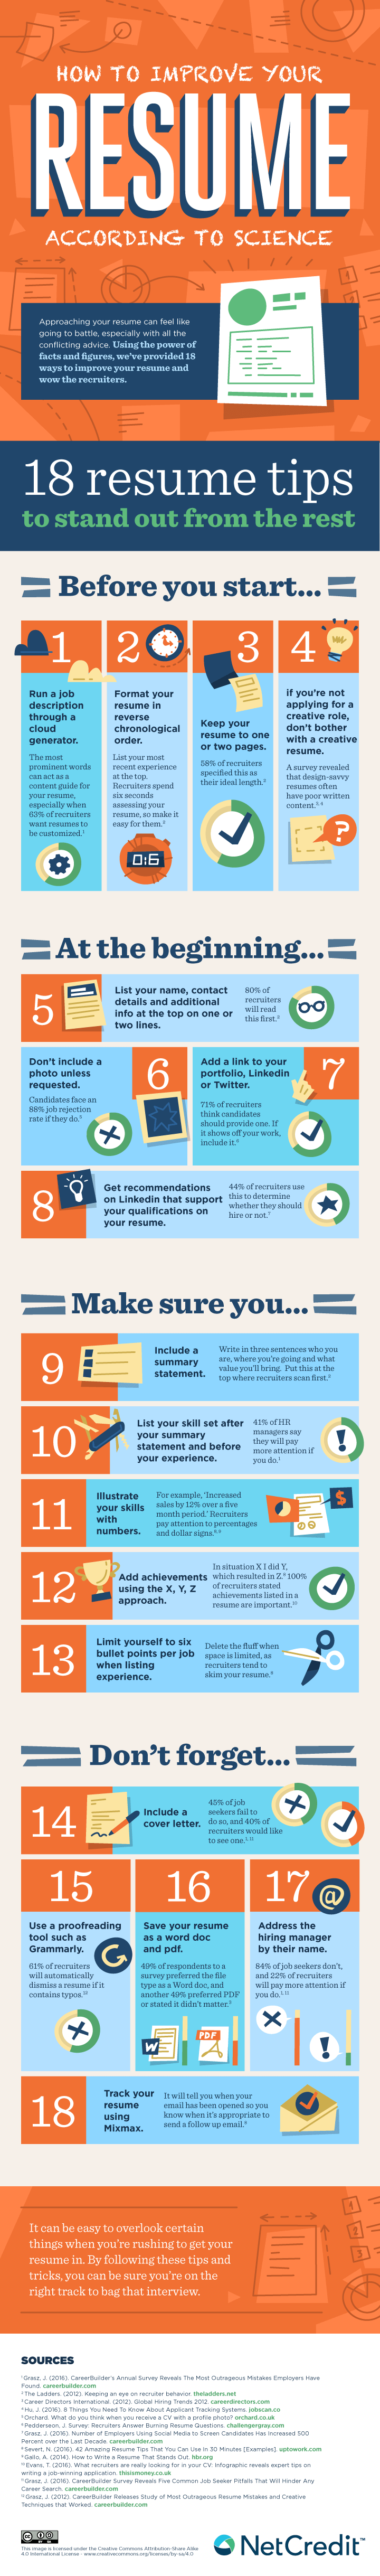 infographic-ways-improve-resume